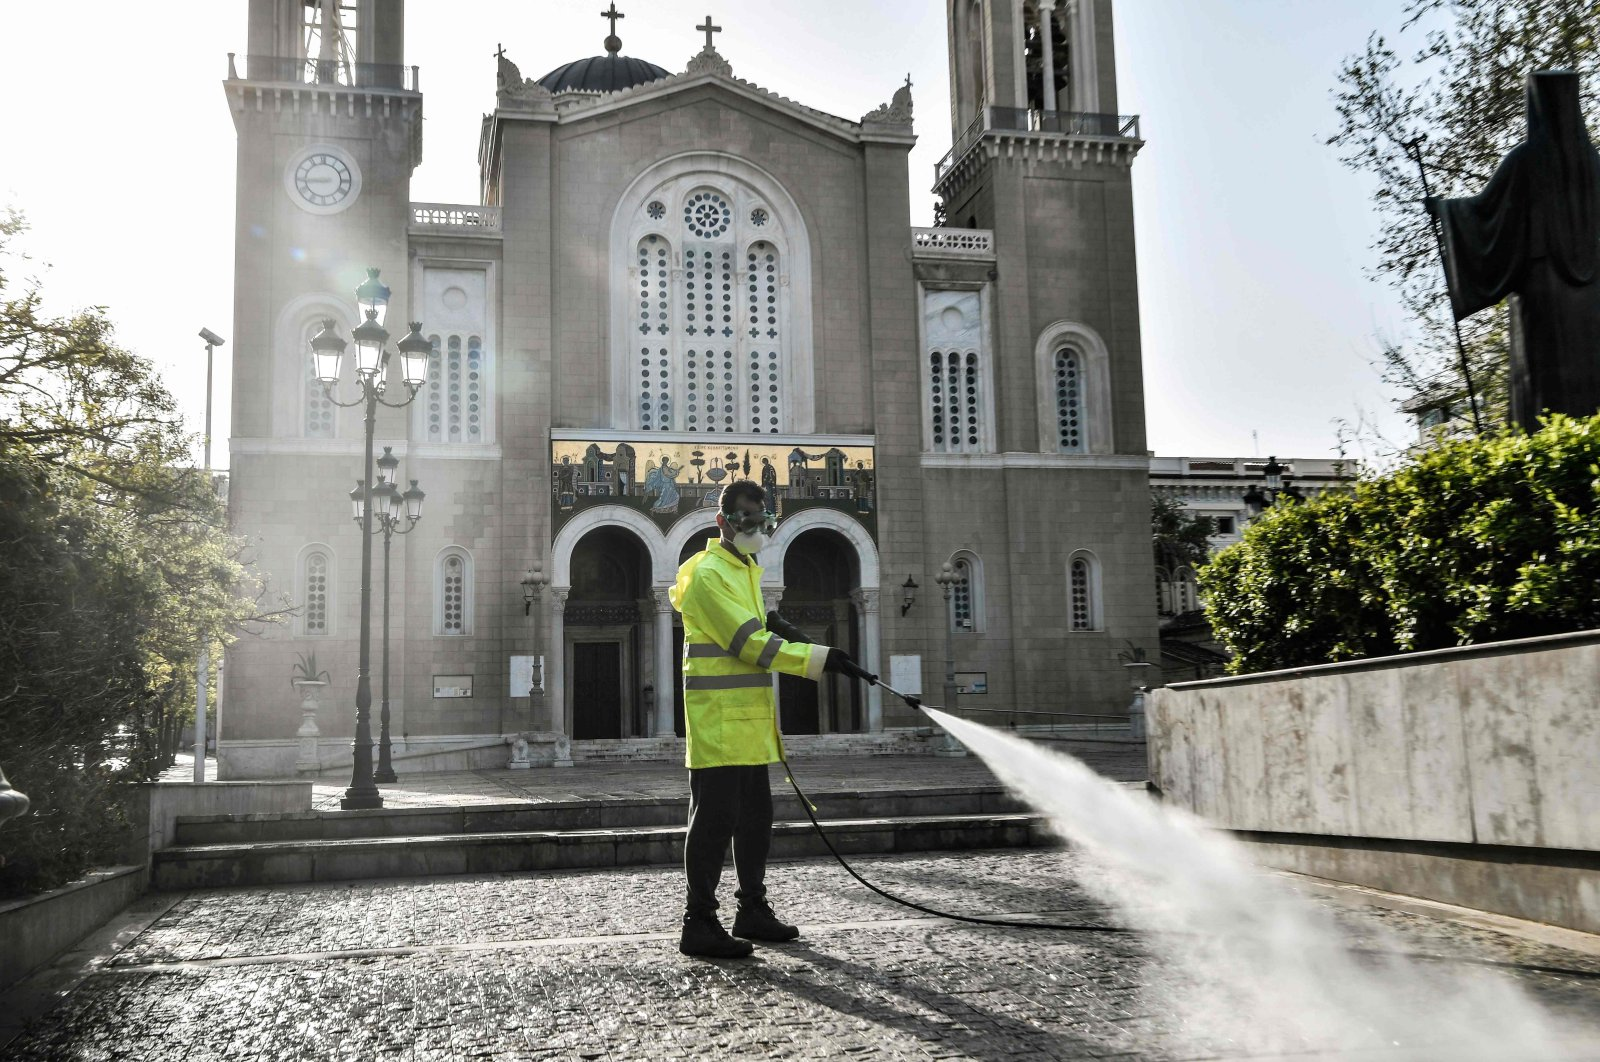 A municipal worker disinfects the forecourt outside Athens Metropolitan Church, Athens, Greece, April 15, 2020. (AFP Photo)